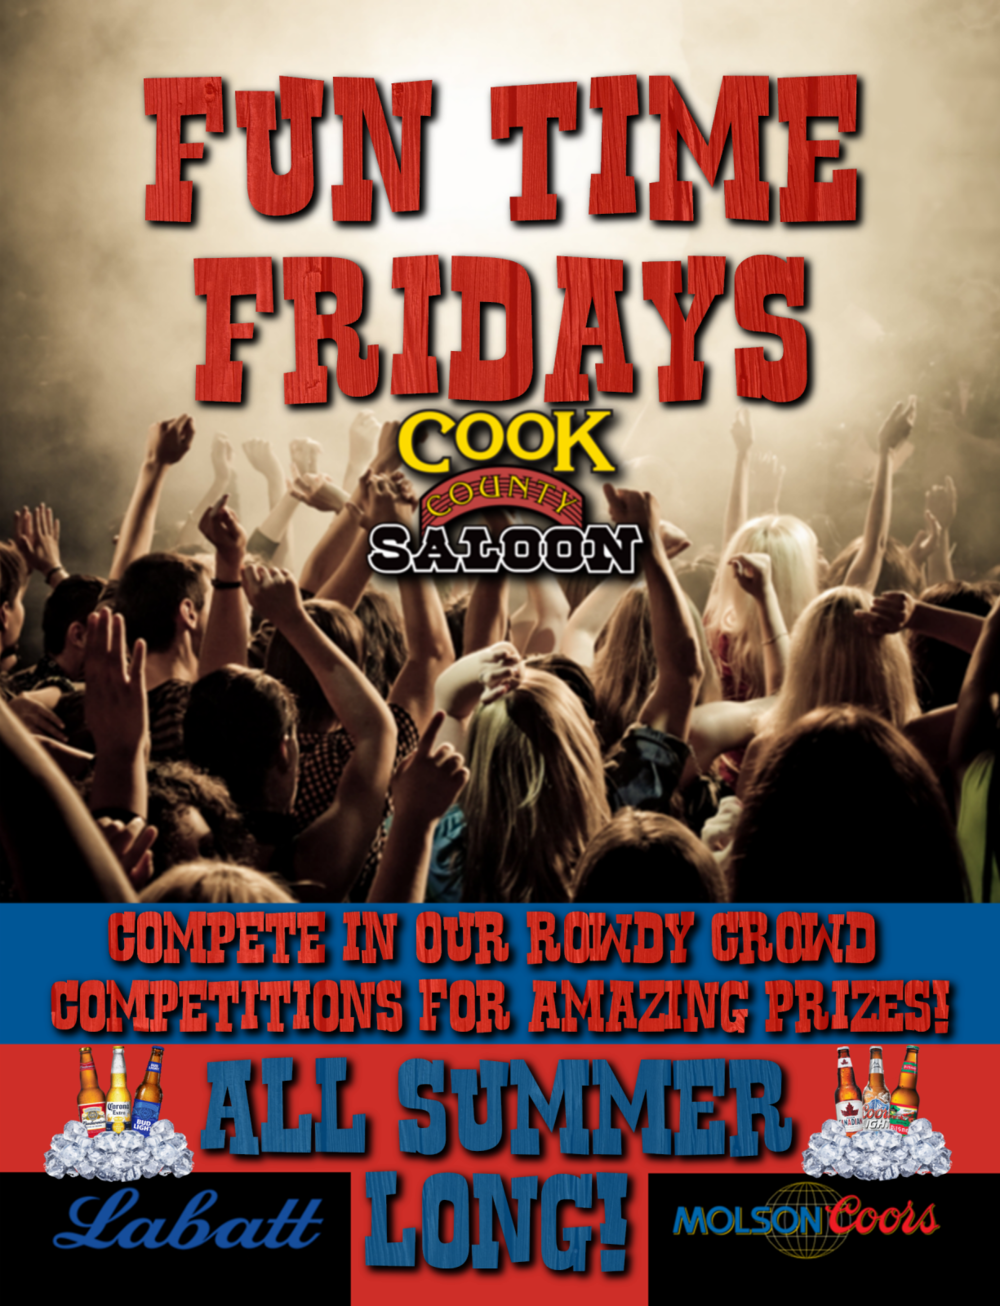 Funtime fridays hq ad poster3.png